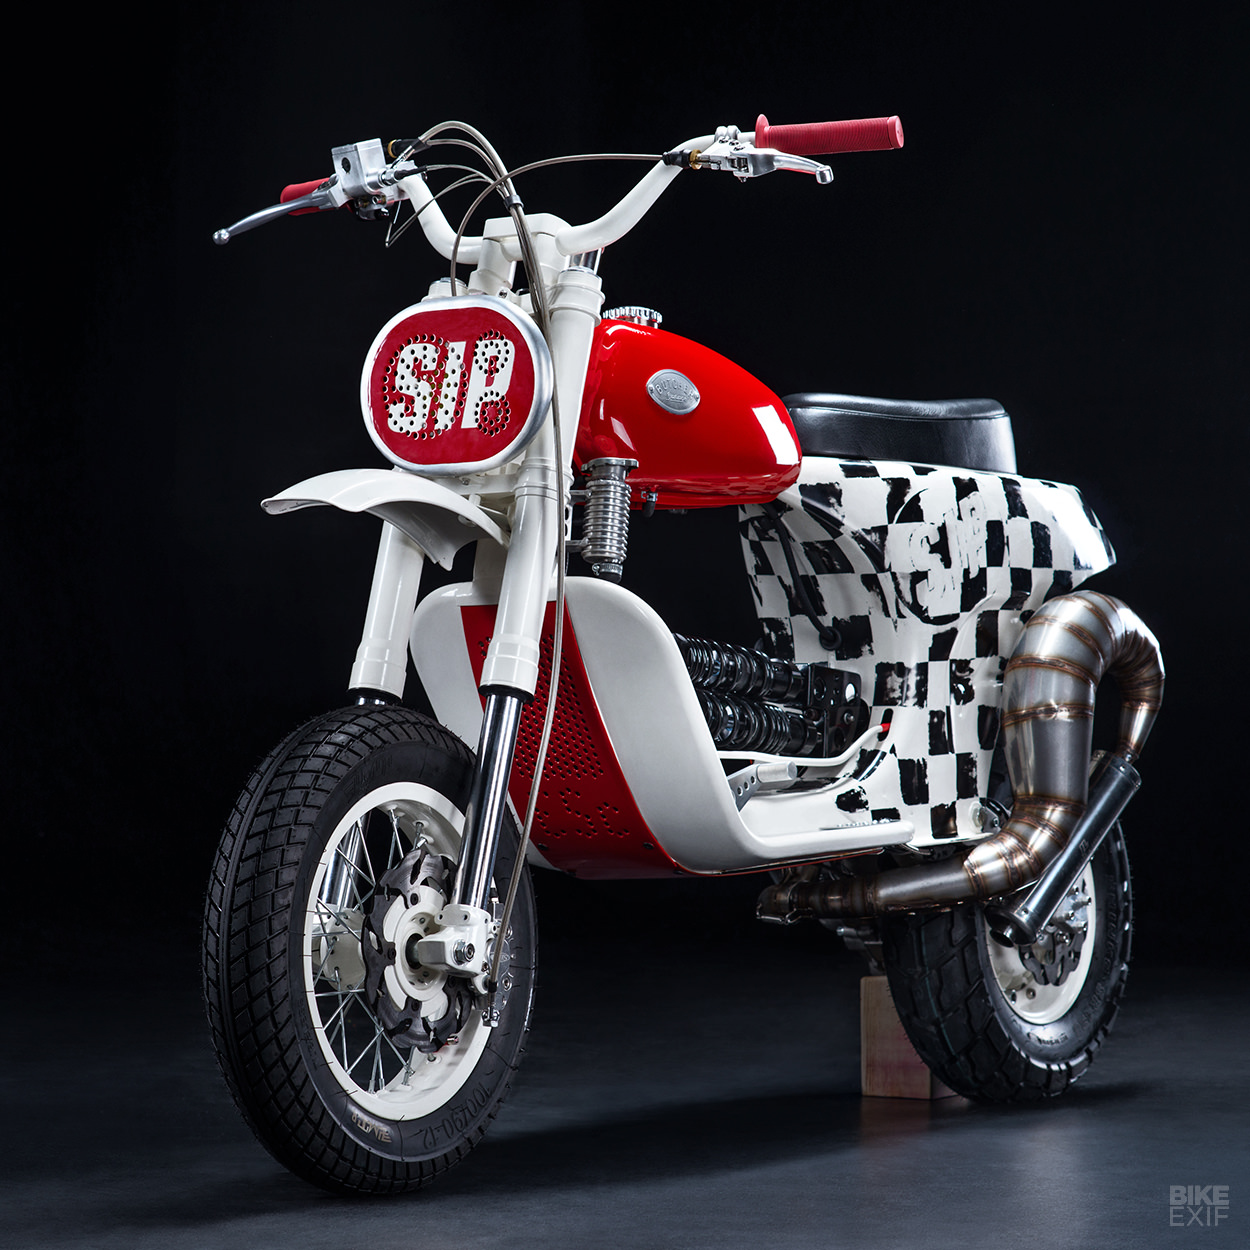 Butchered An Insane Custom Vespa Scooter From Russia Bike Exif